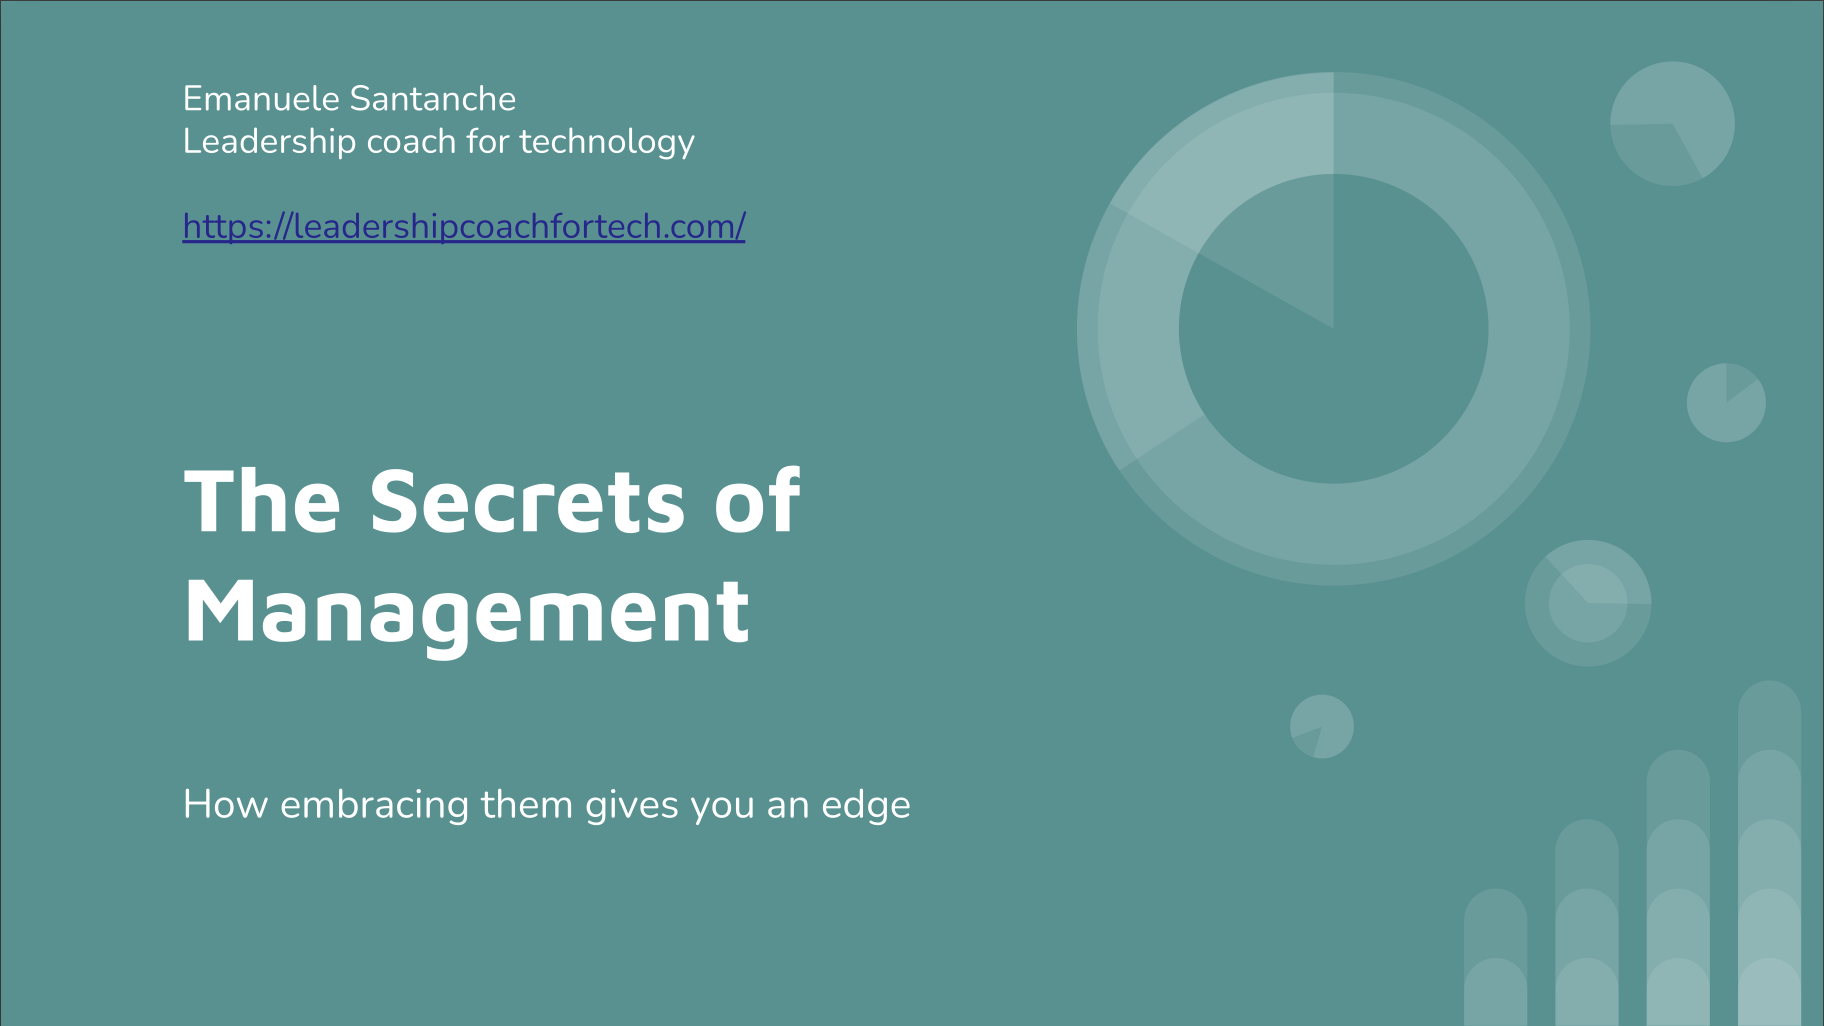 Get my free course ʻThe Secrets of Management'